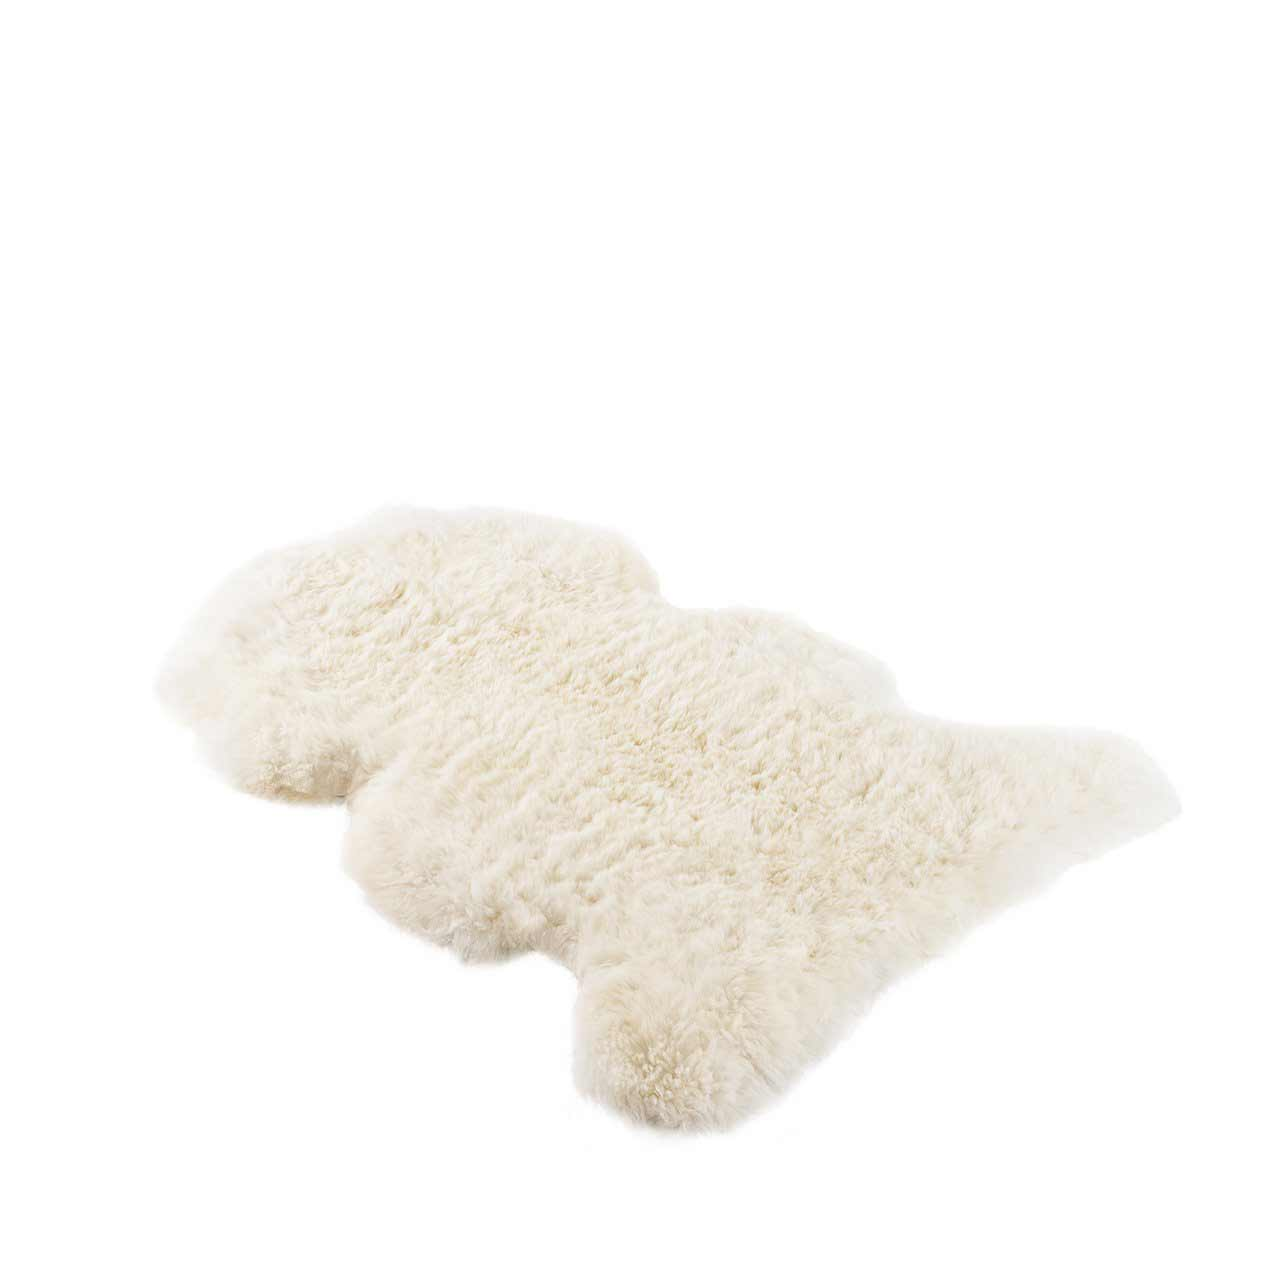 Long Merino Sheepskin Rug - Natural | The One and Only | Ugg Australia®